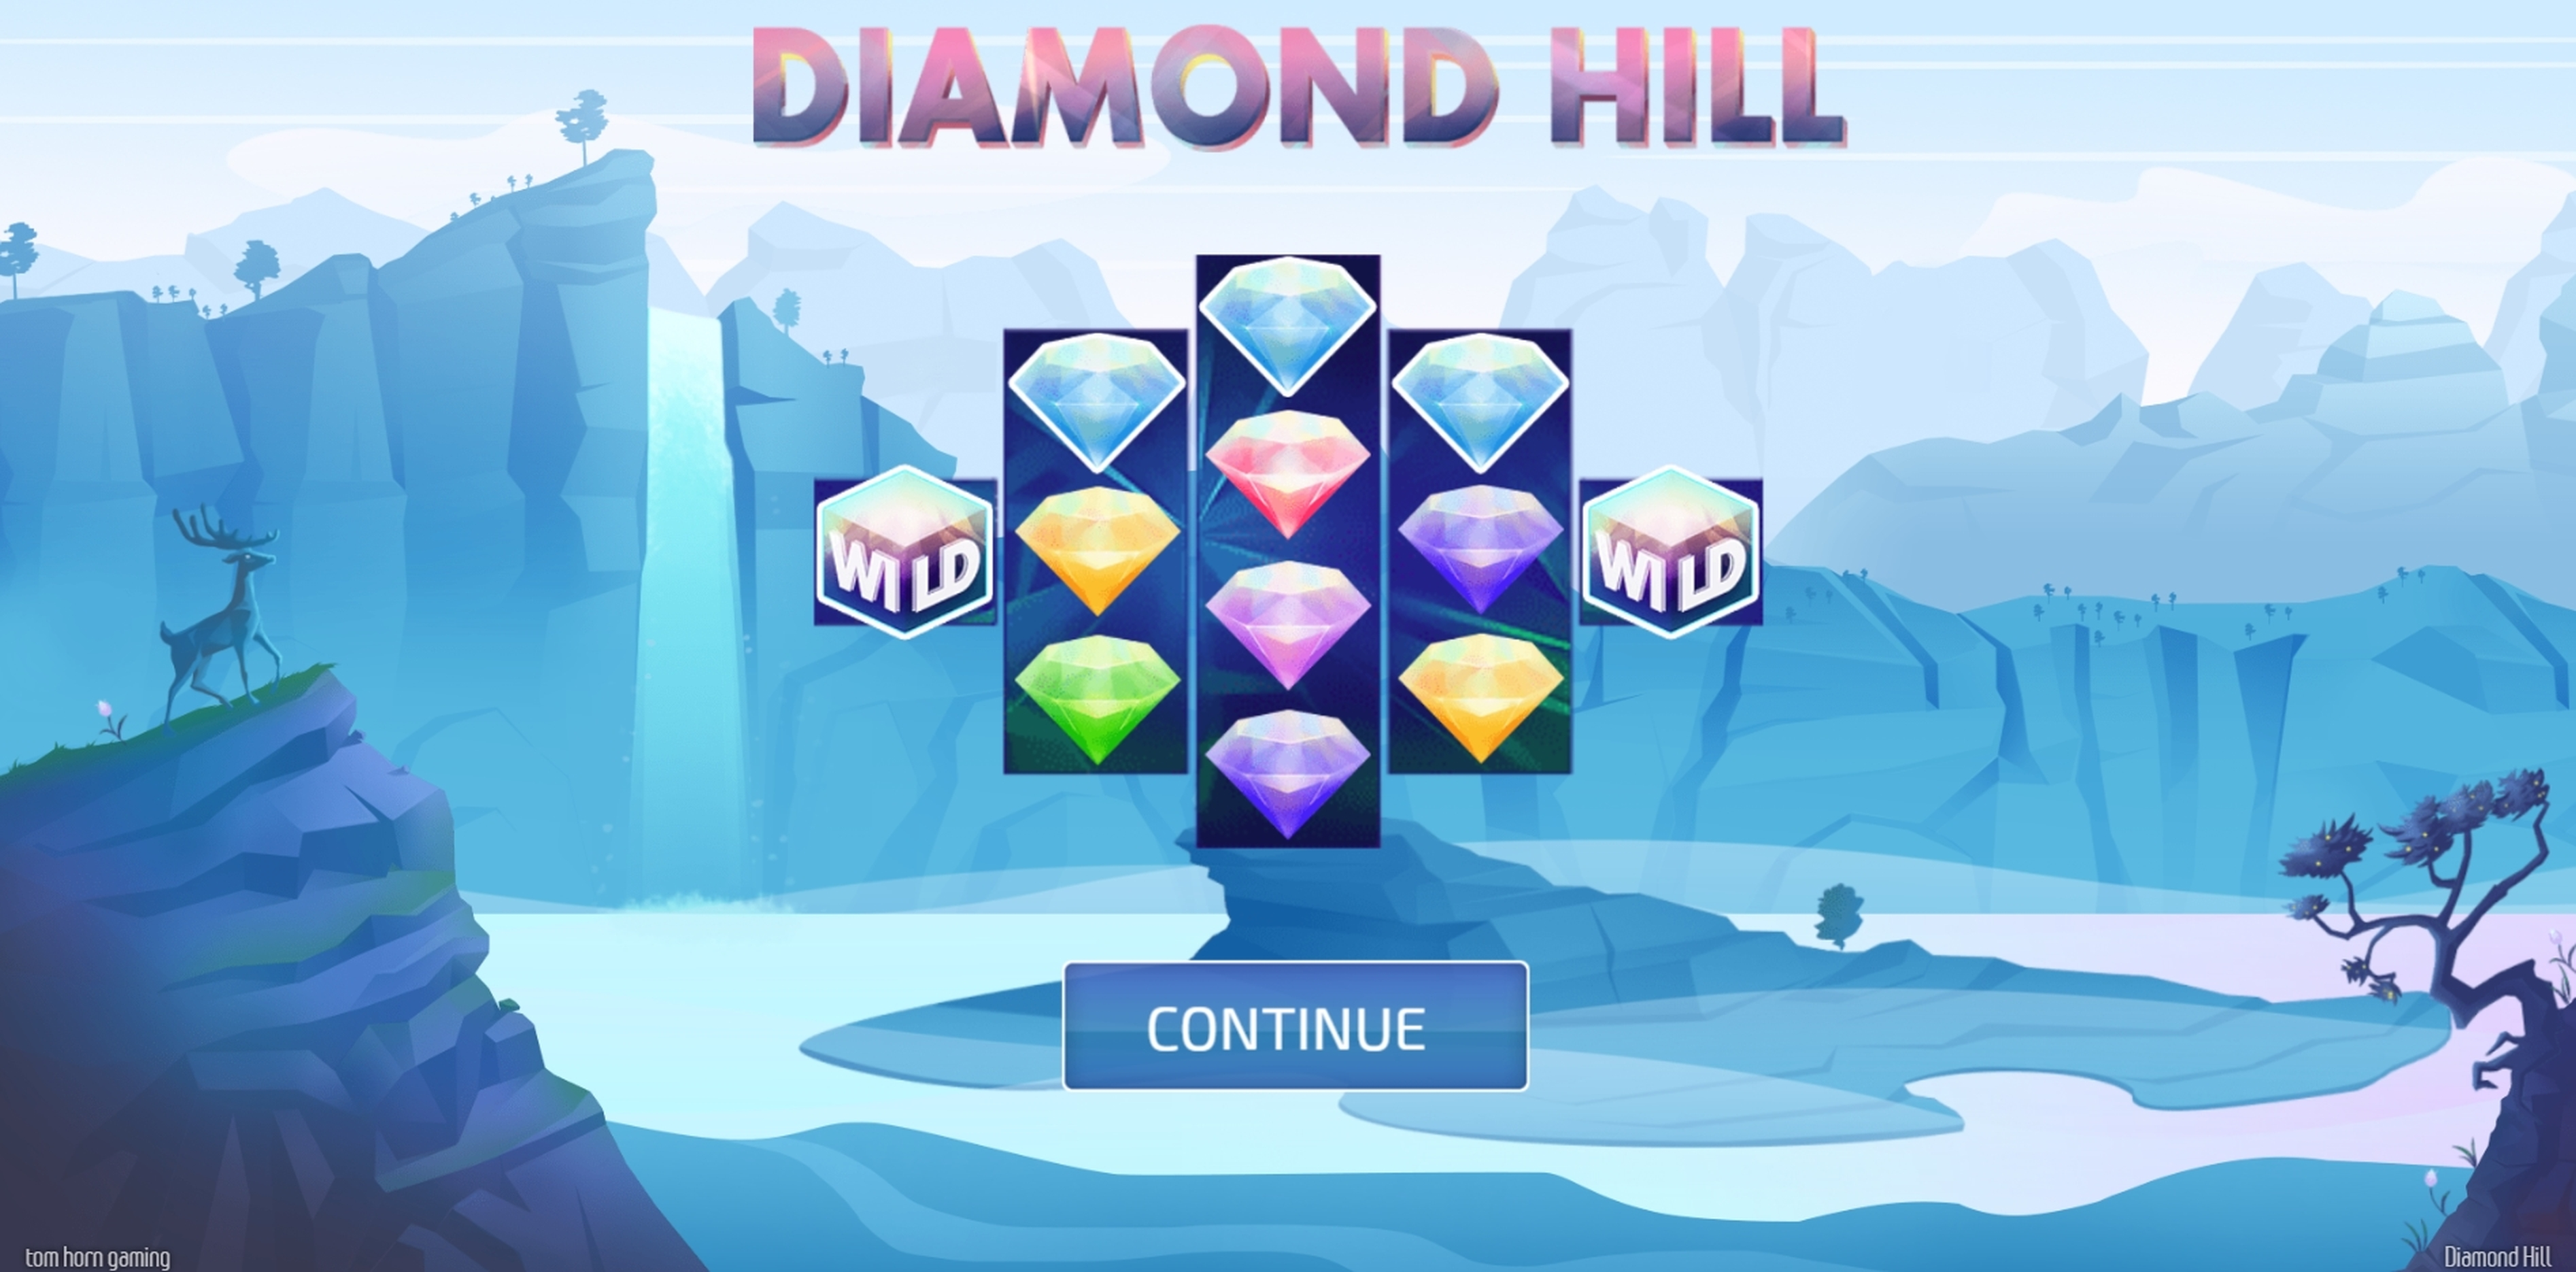 Play Diamond Hill Free Casino Slot Game by Tom Horn Gaming